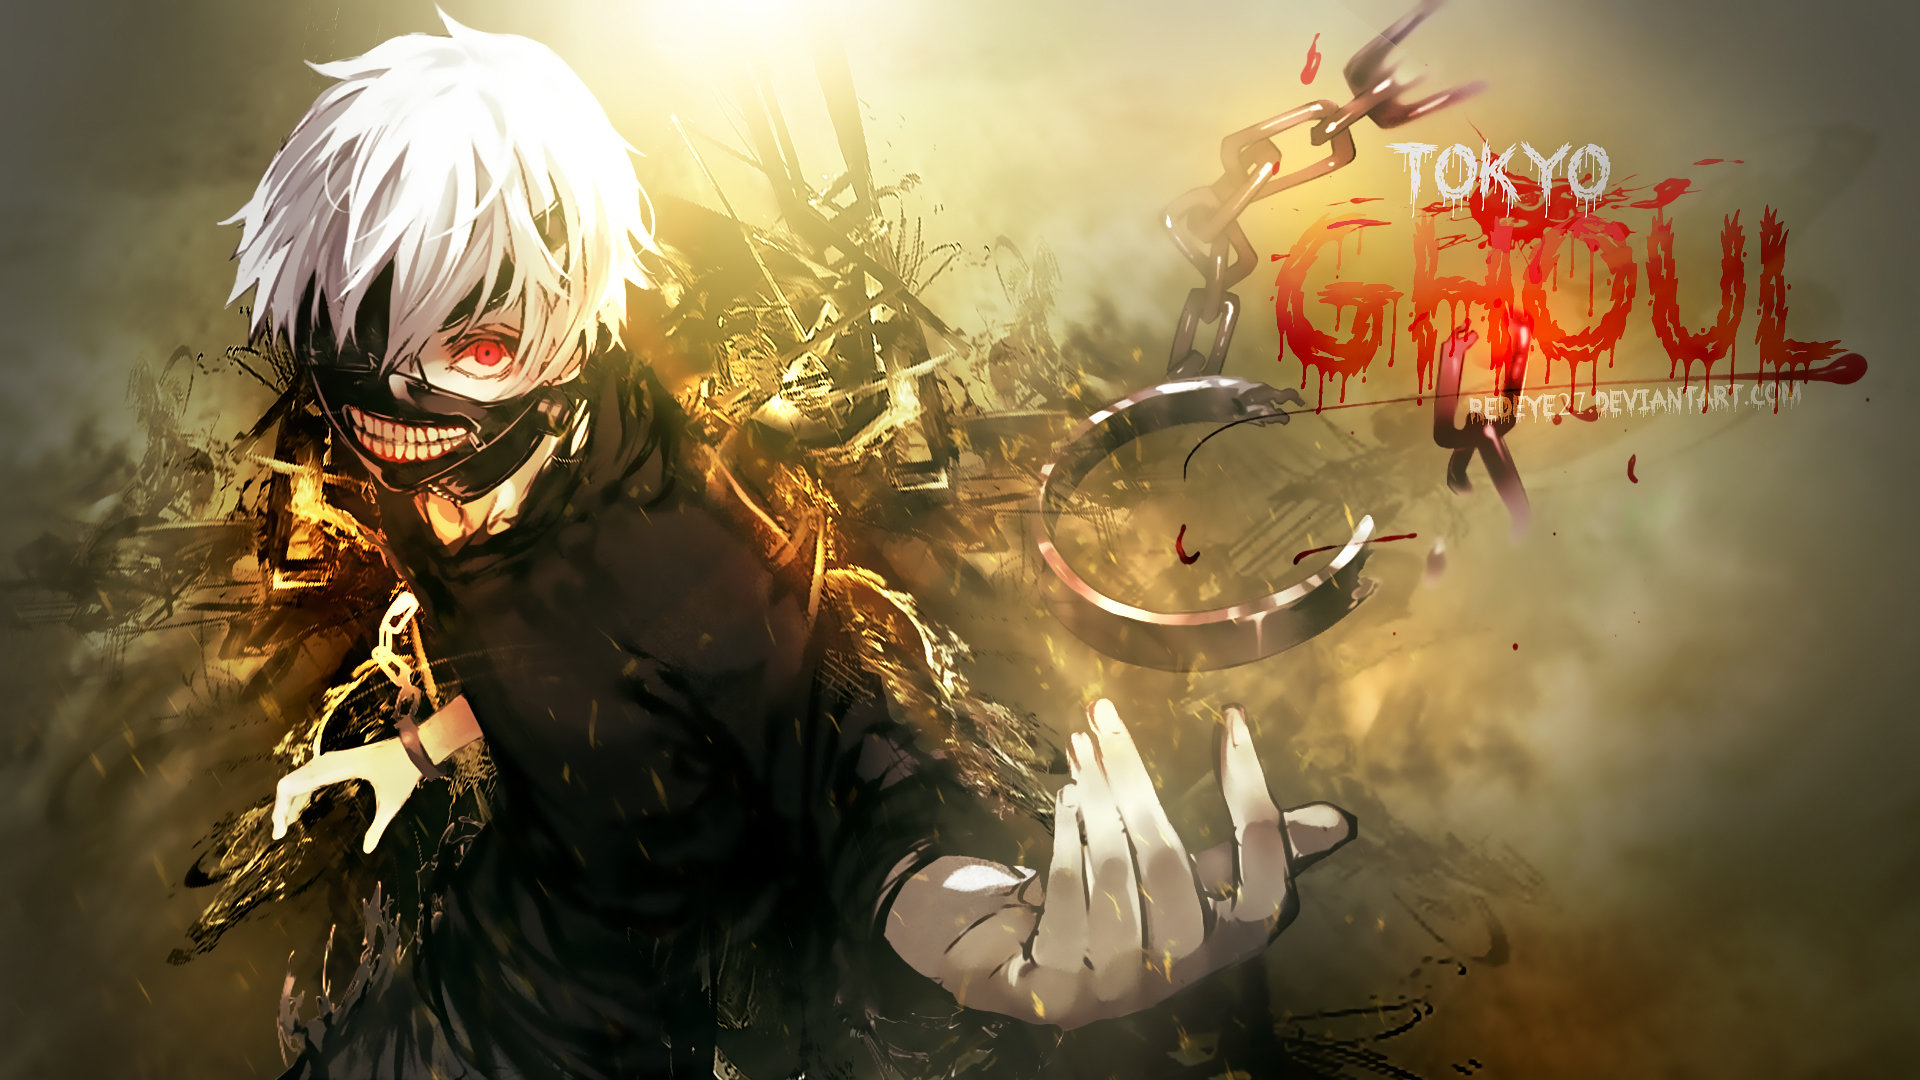 Free Ken Kaneki high quality wallpaper ID:150139 for full hd 1920x1080 computer